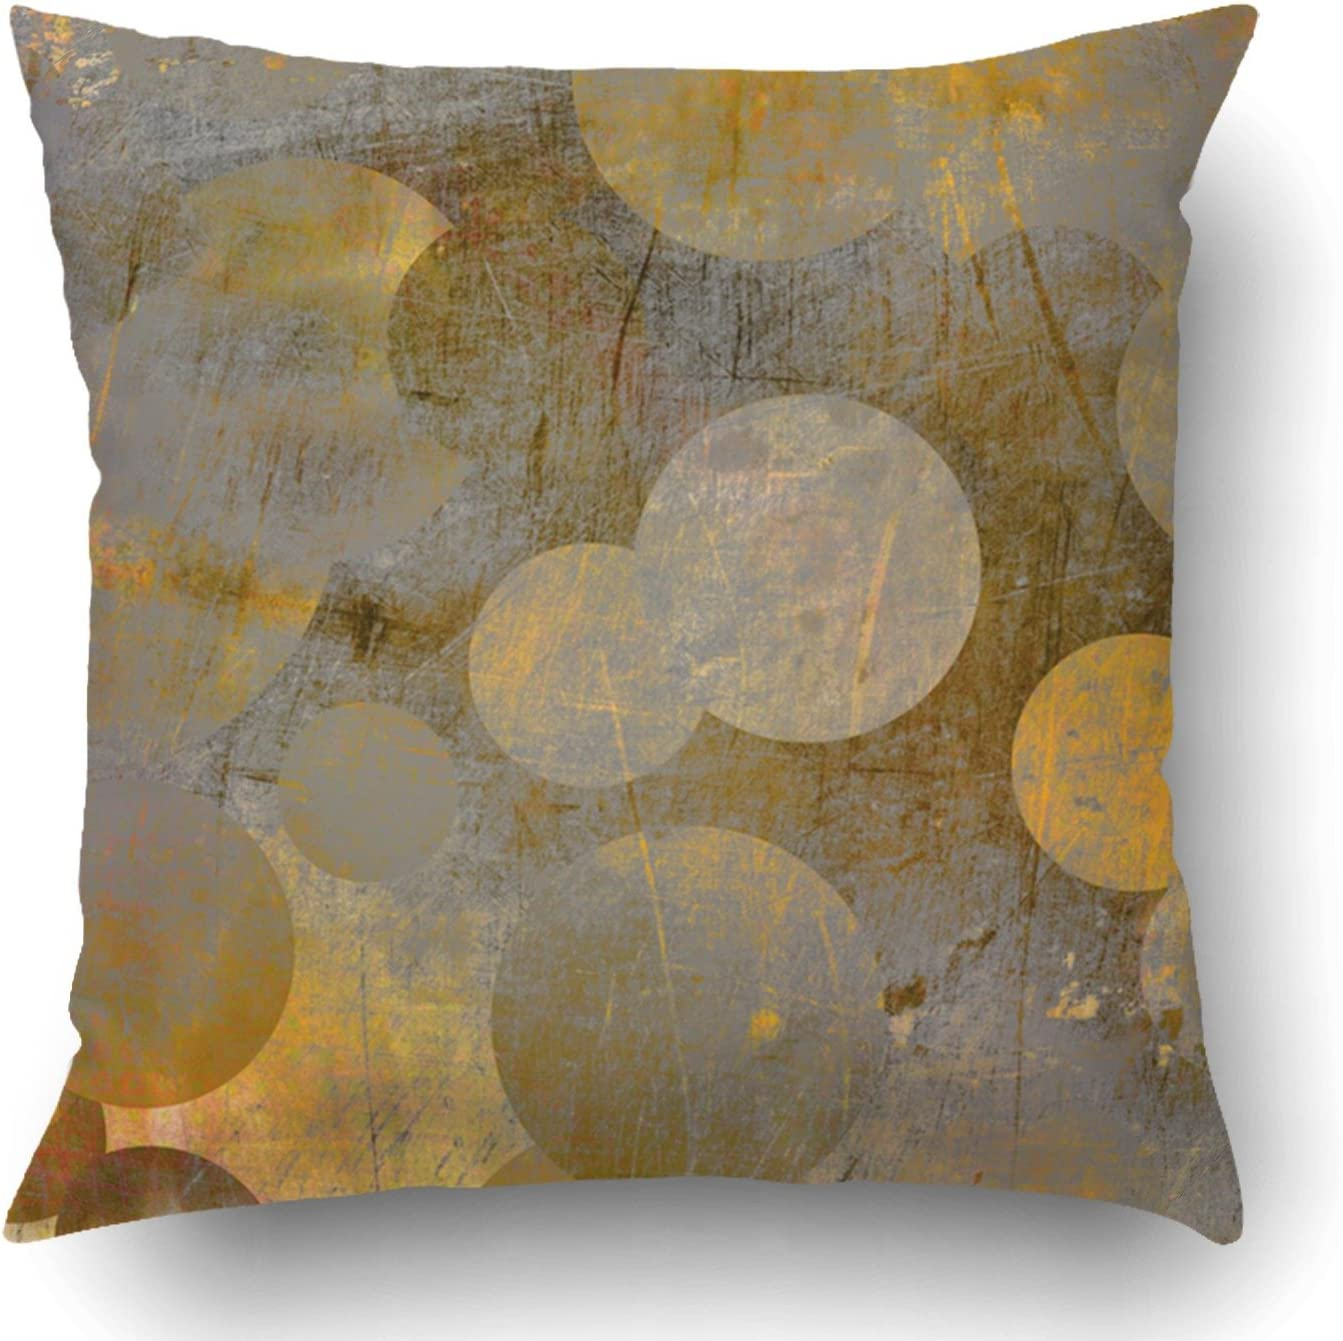 Emvency Throw Pillow Covers Yellow Modern Abstract Grunge Geometric Golden and Grey with Circles Brown Gold Wall Line Strip Old Polyester 18 X 18 Inch Square Hidden Zipper Decorative Pillowcase